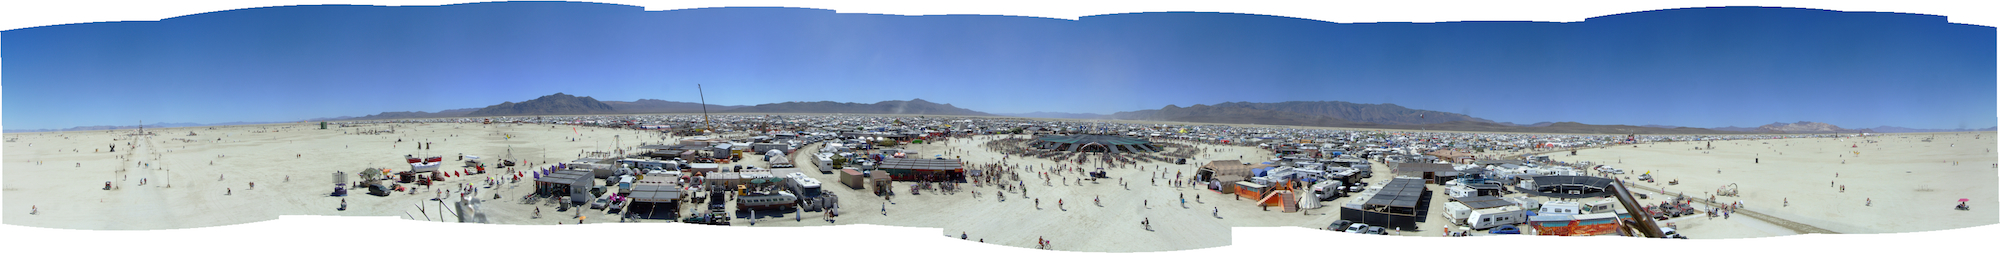 black rock city pano.jpg